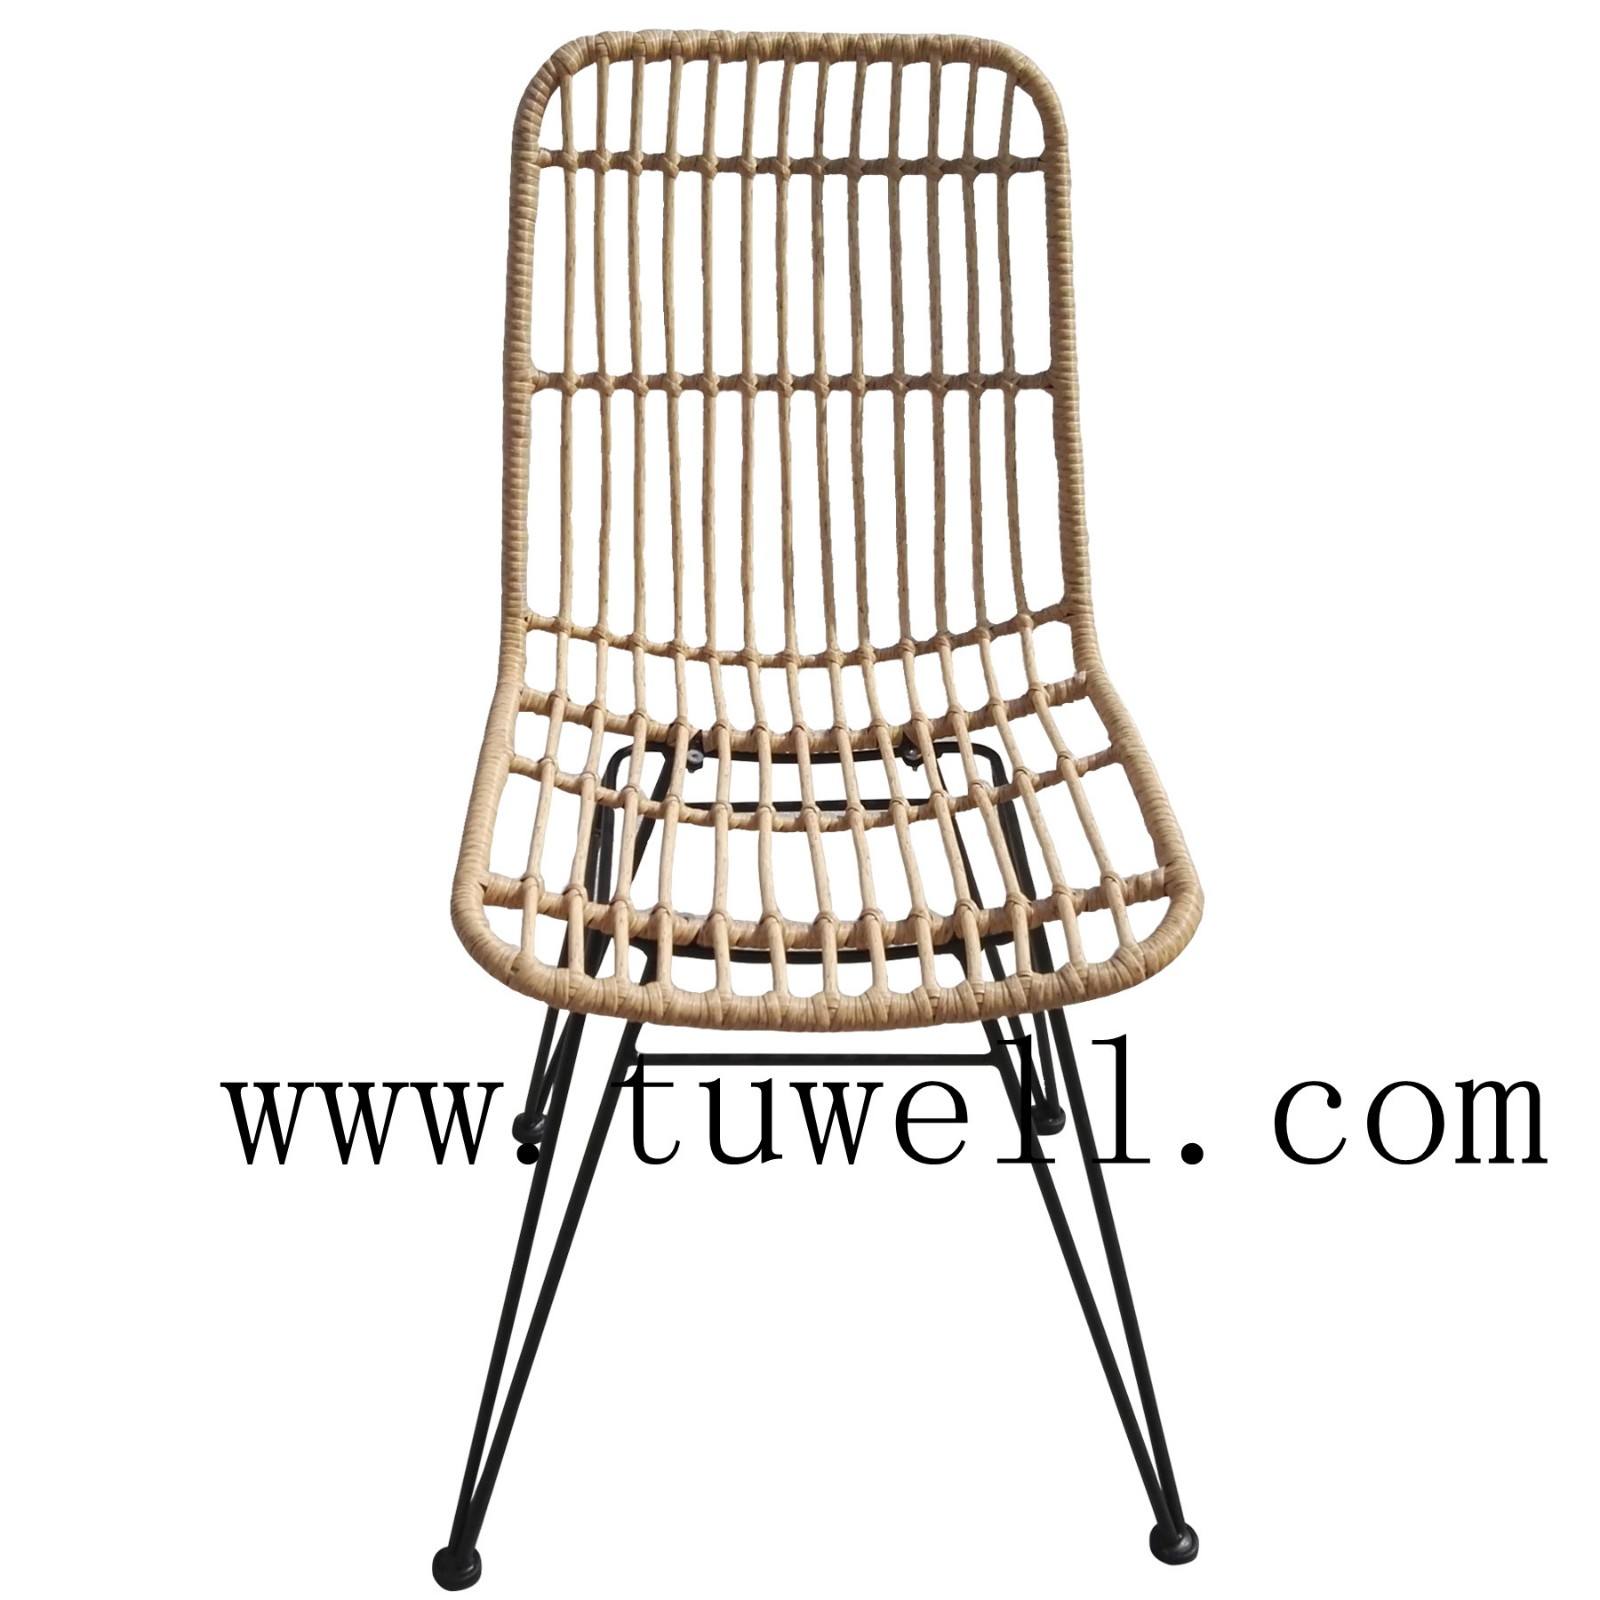 Tuwell-Find TW8708S Steel Rattan Chair-7